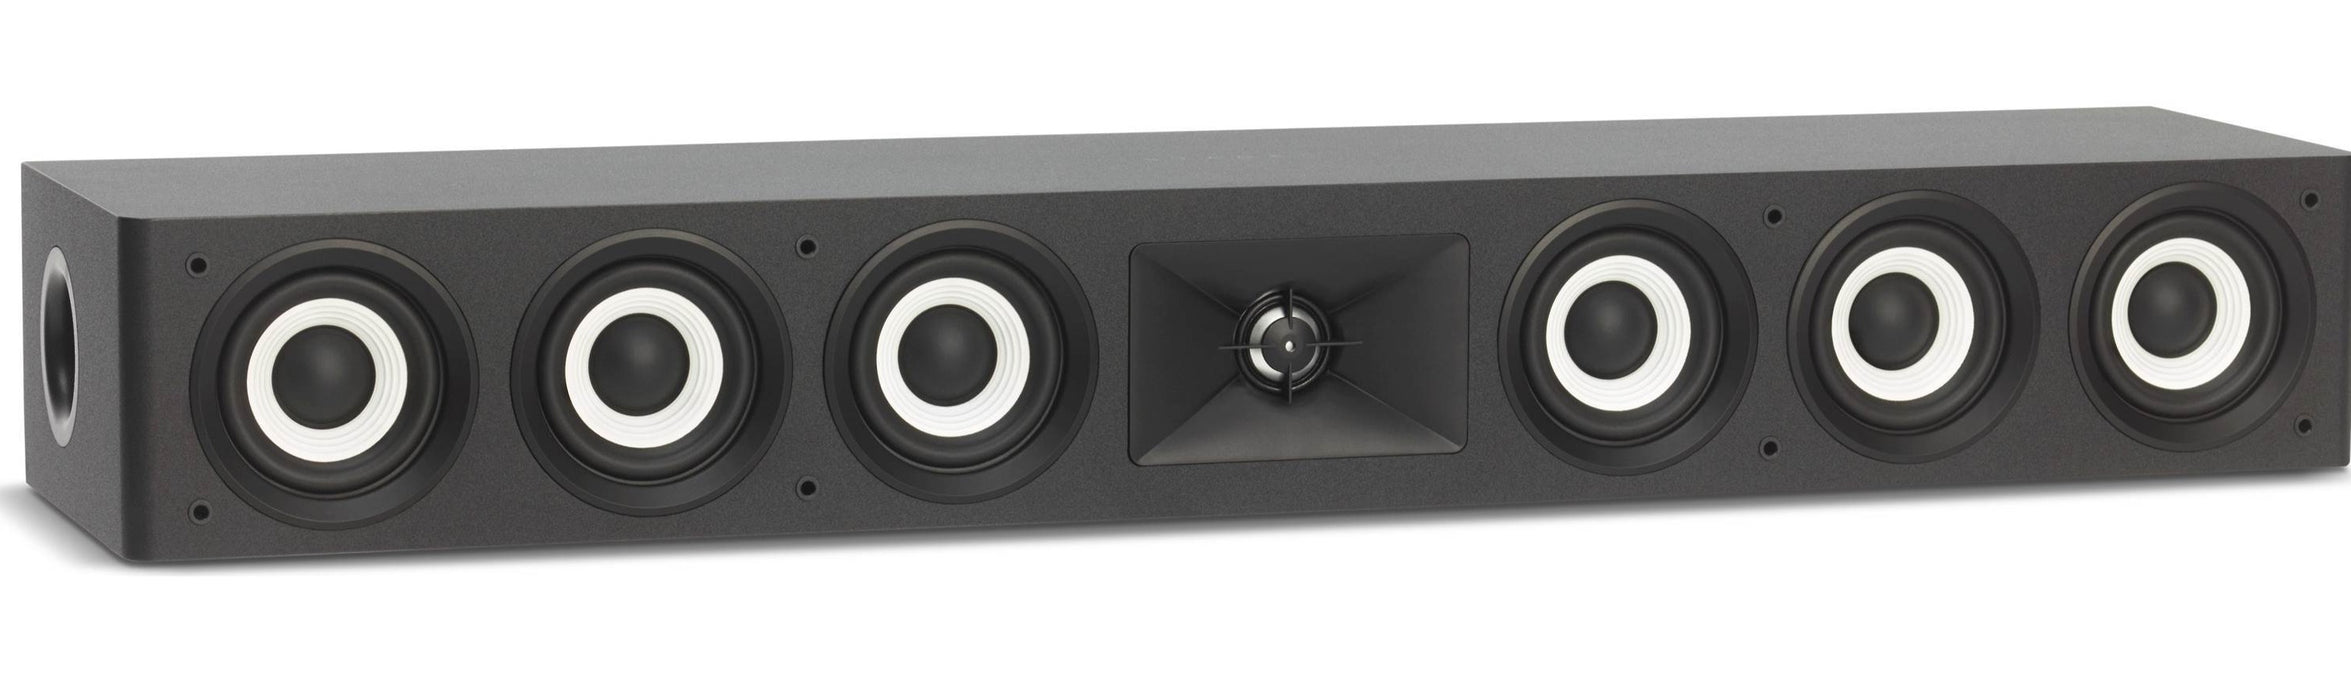 JBL A135C - Slim Centre Speaker For Home Theater - Best Home Theatre Systems - Audiomaxx India